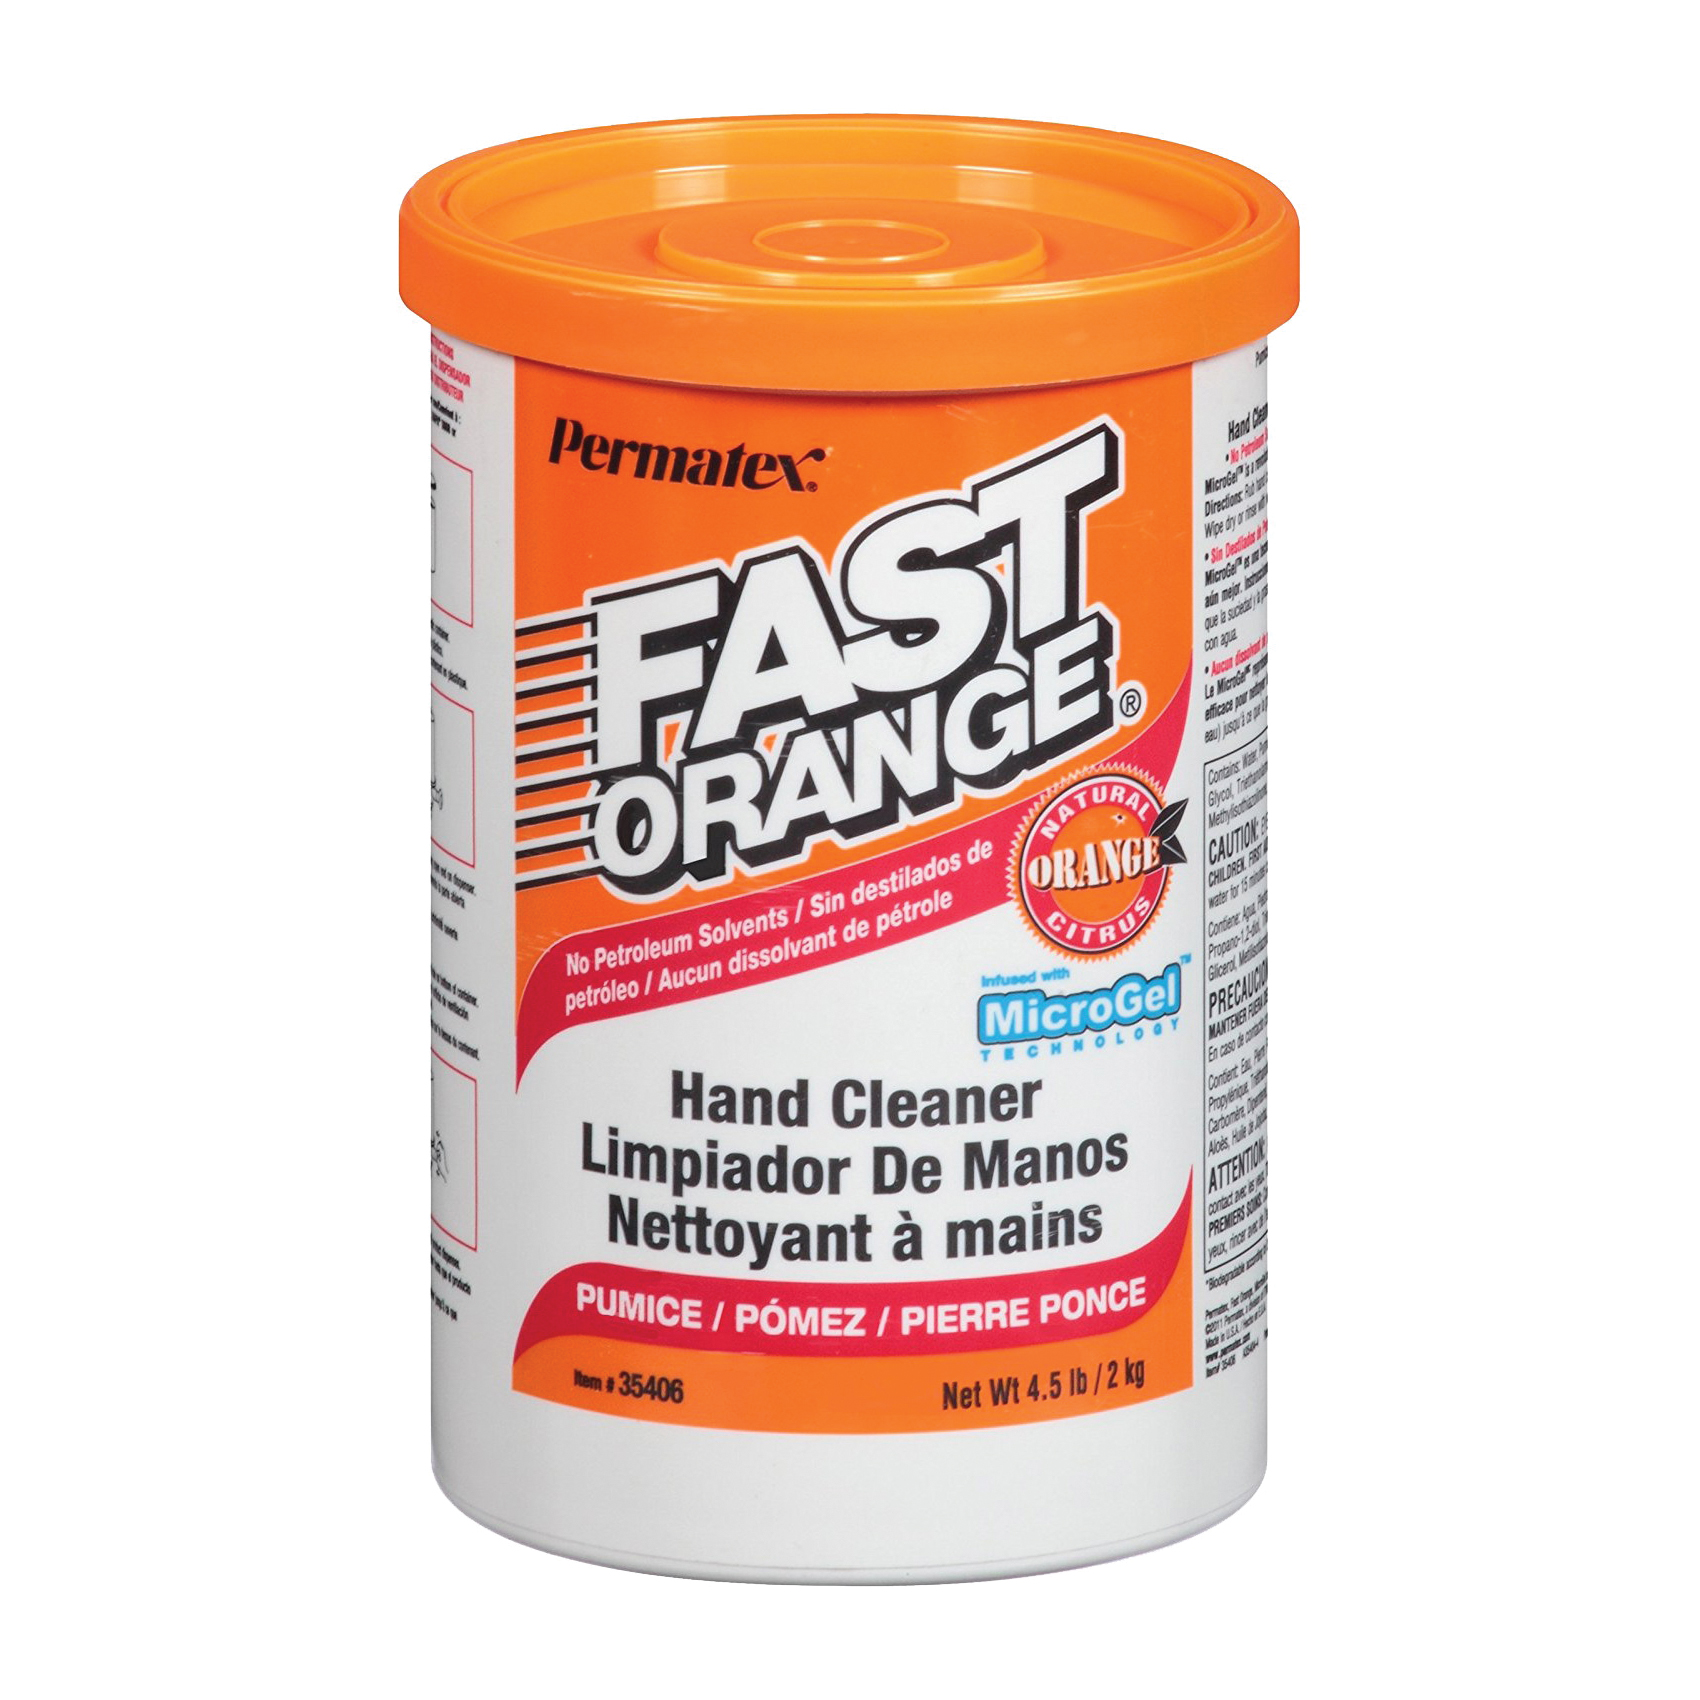 Picture of Permatex 35406 Hand Cleaner, Paste, White, Orange, 4.5 lb Package, Tub